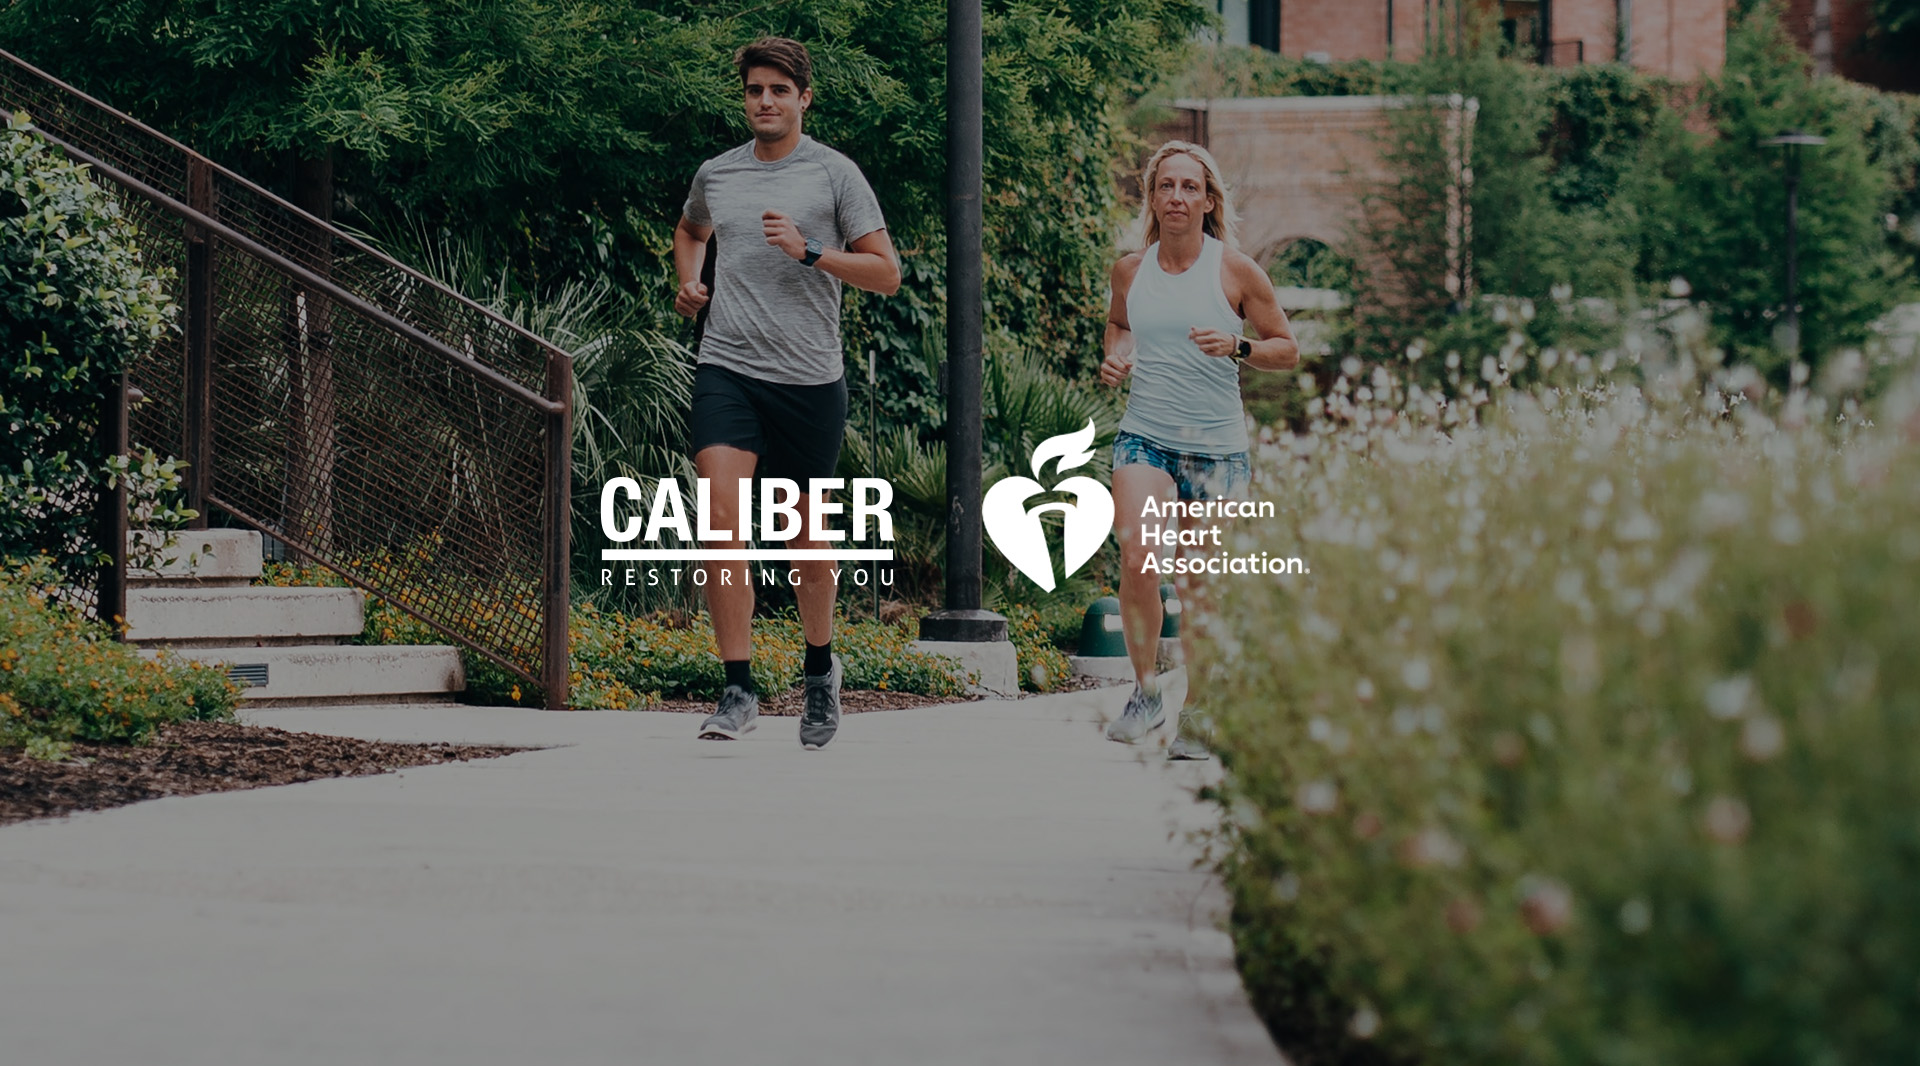 Caliber Collision Continues 'Restoring You' By Promoting Heart Health landscape